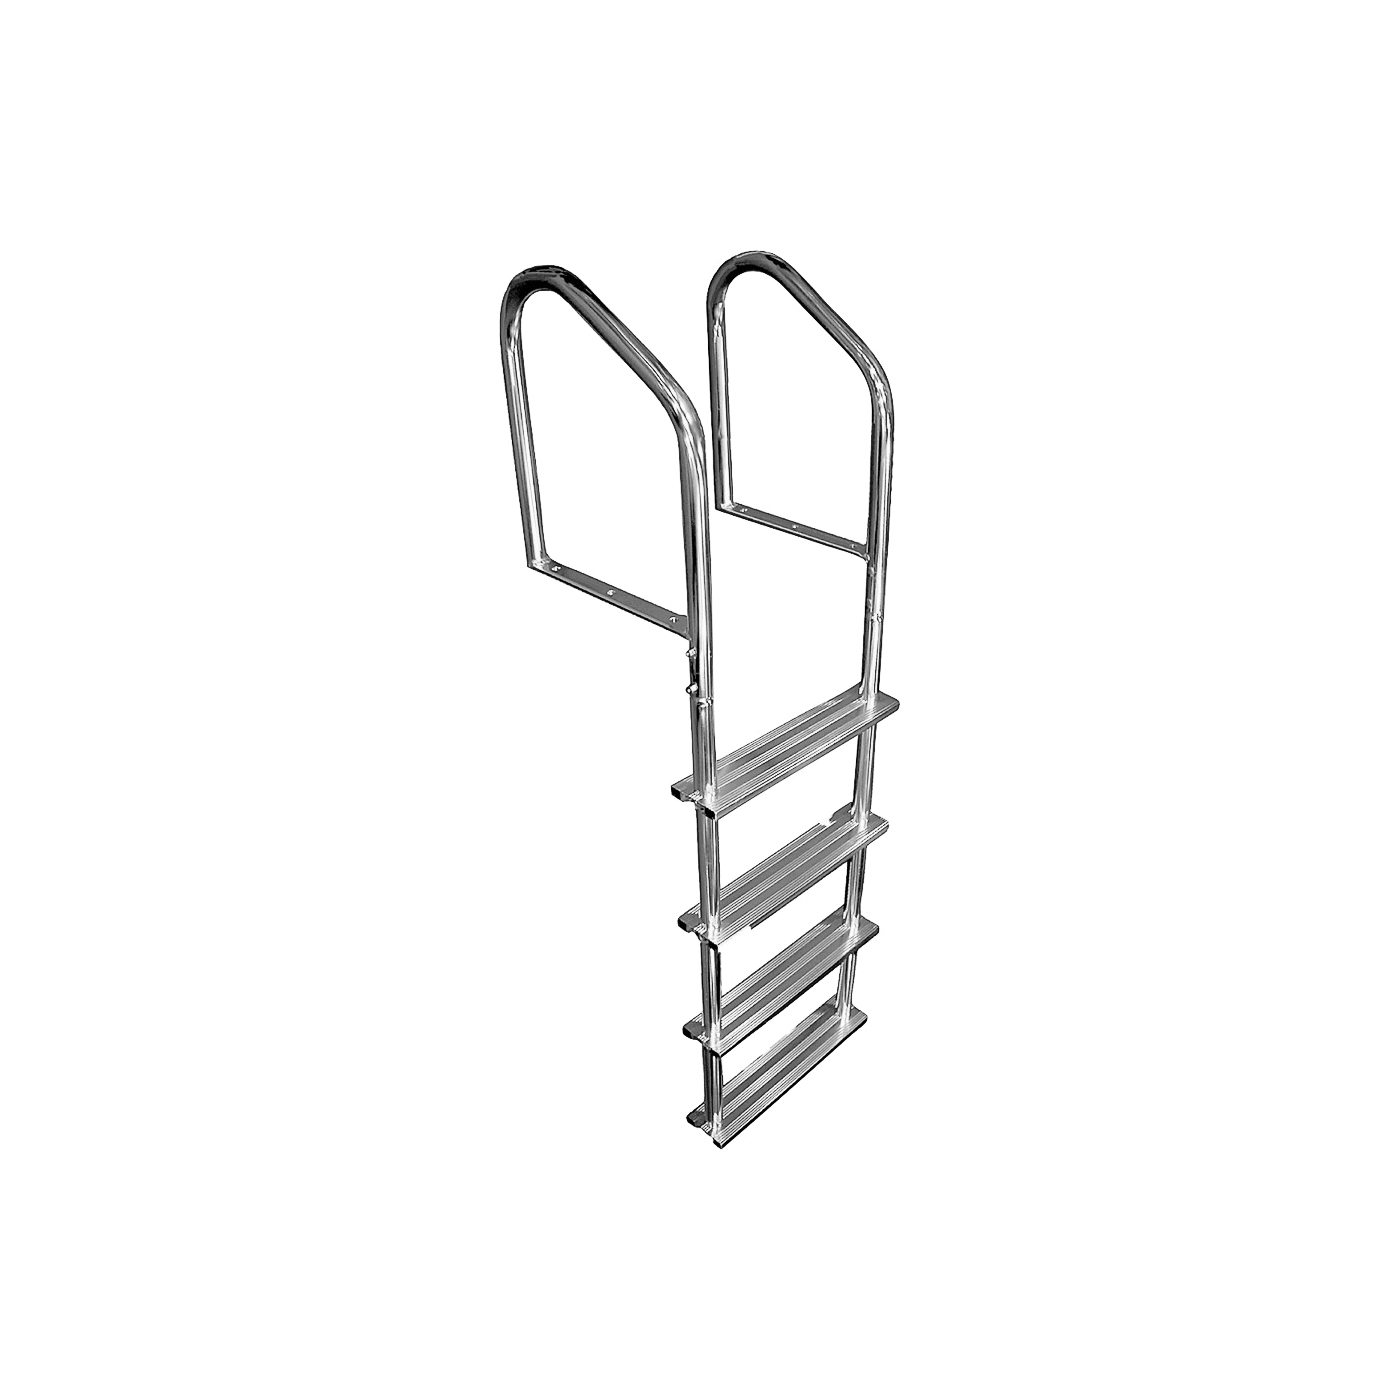 Picture of Multinautic 15513 Tubular Dock Ladder, 5 ft 1 in H, 400 lb, 4-Step, Aluminum, Polished